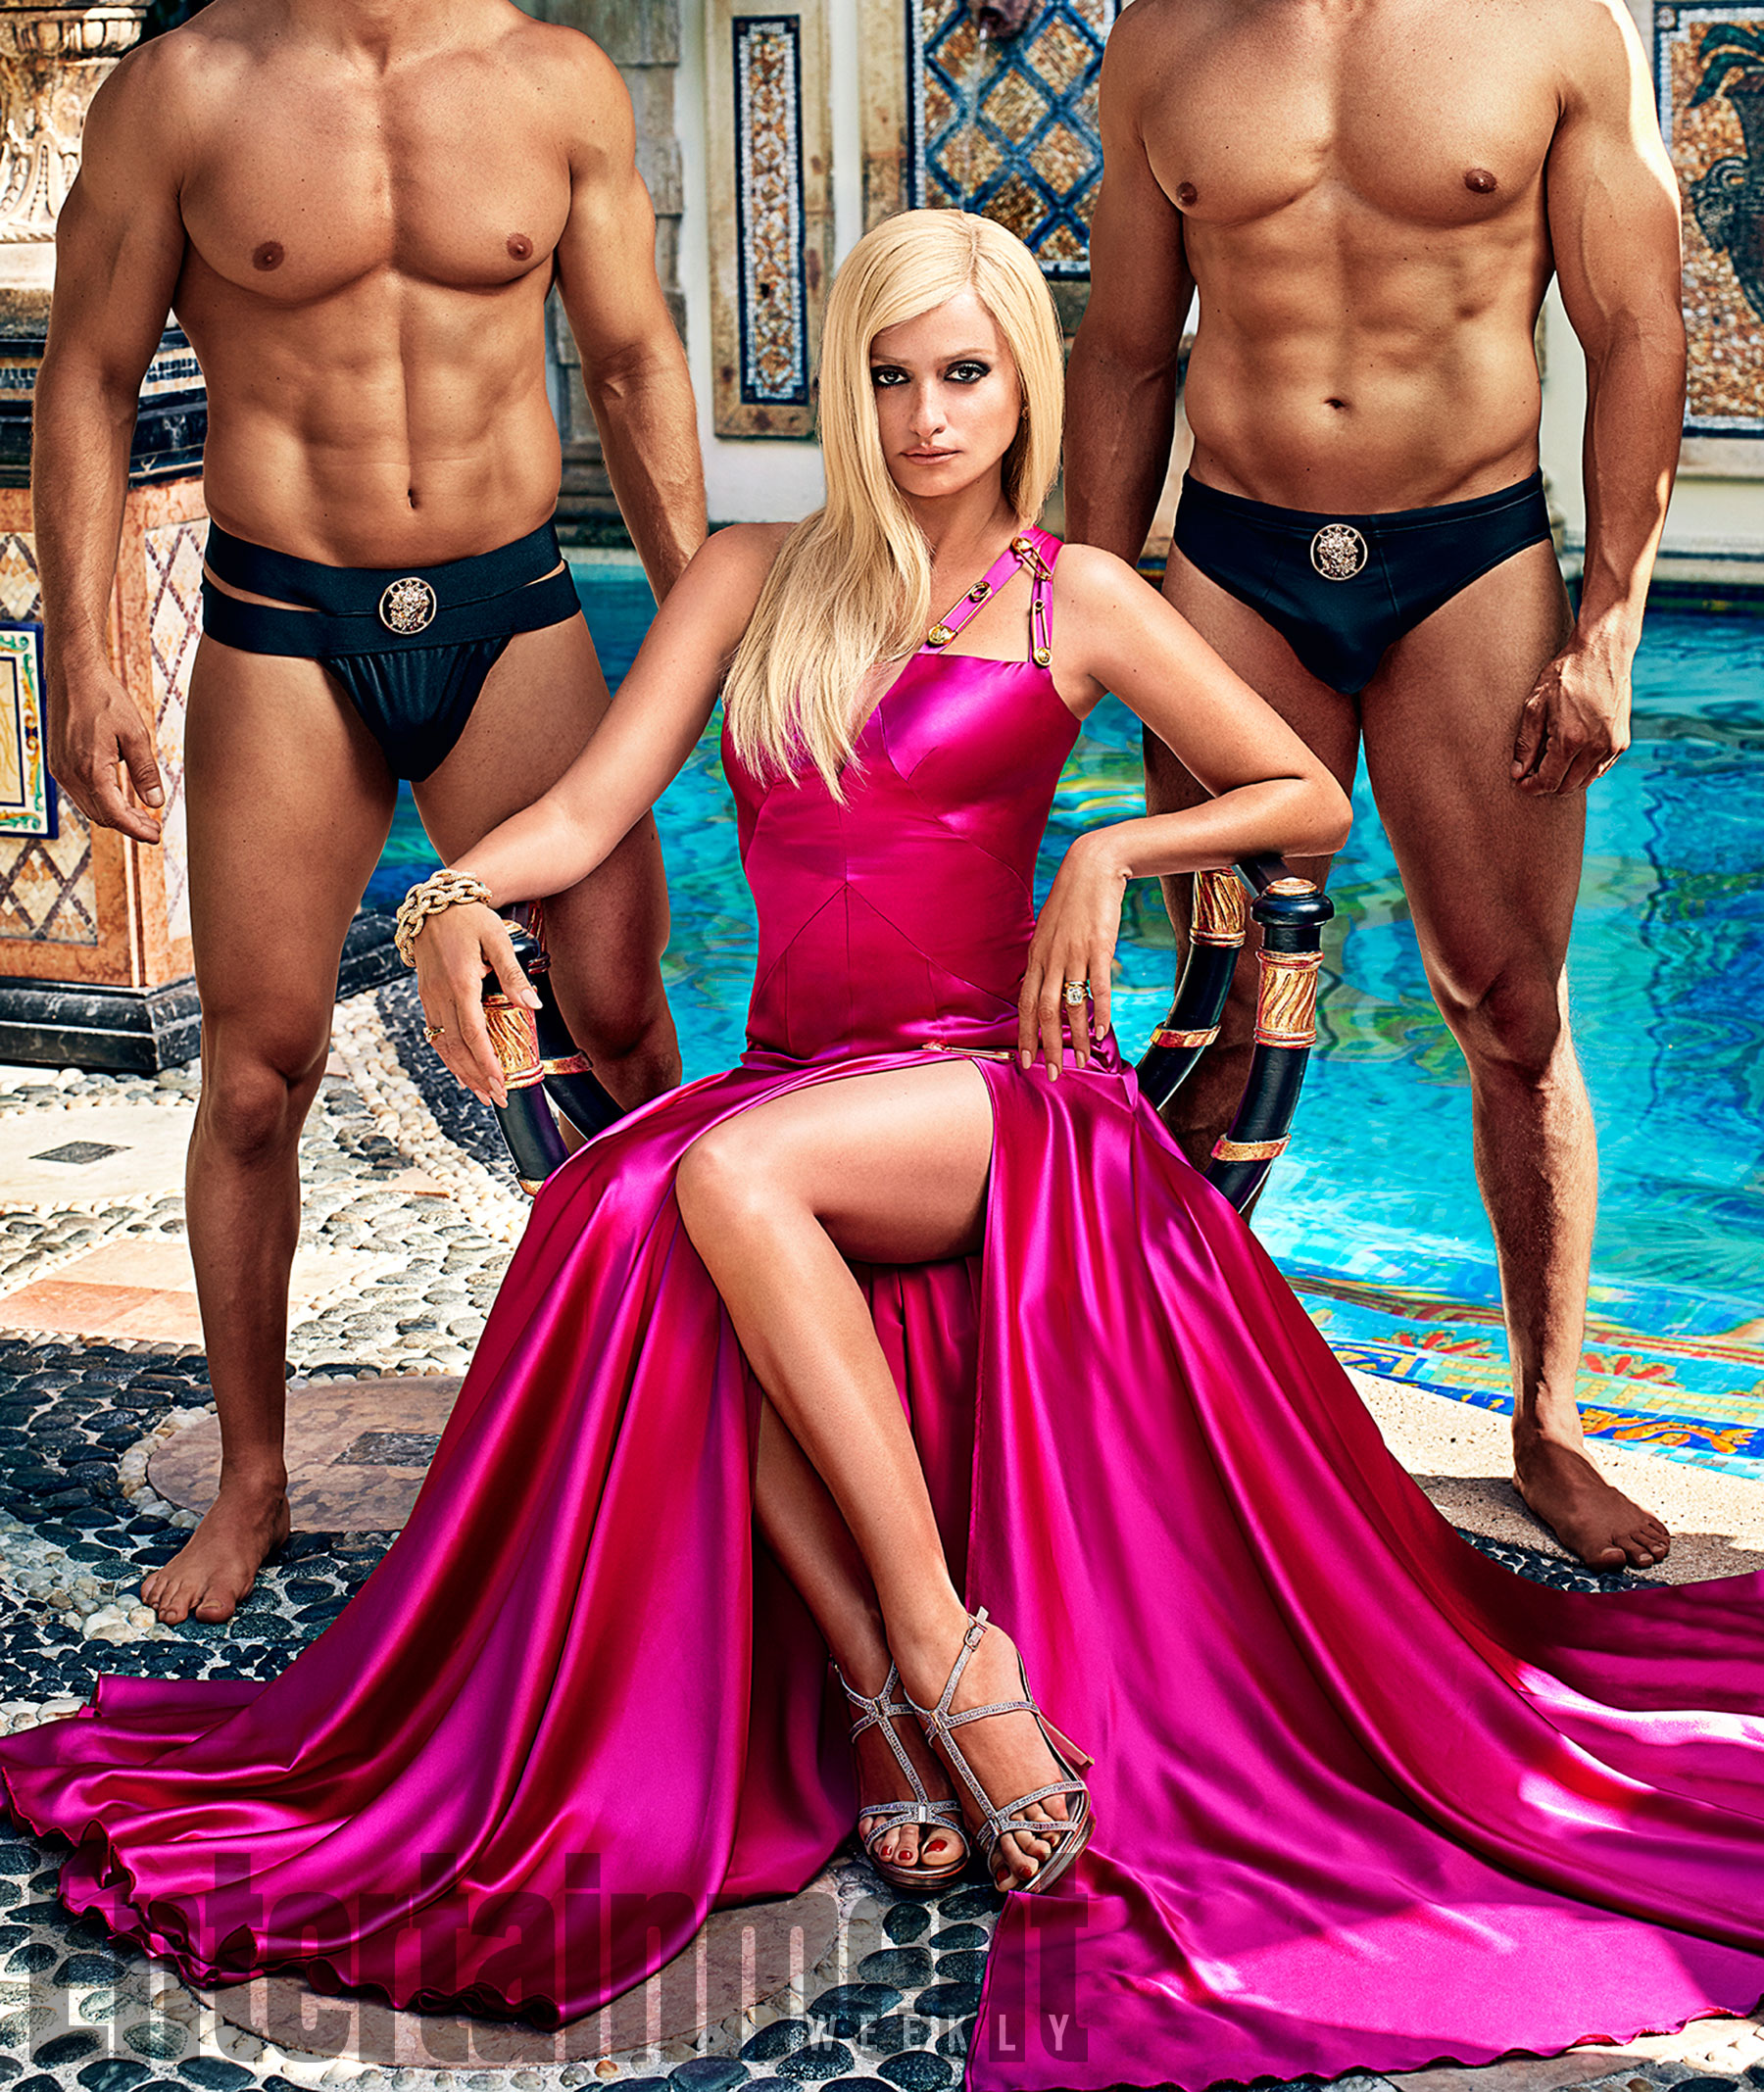 Penelope Cruz plays as Donatella Versace in The Assassination of Gianni Versace - American Horror Story